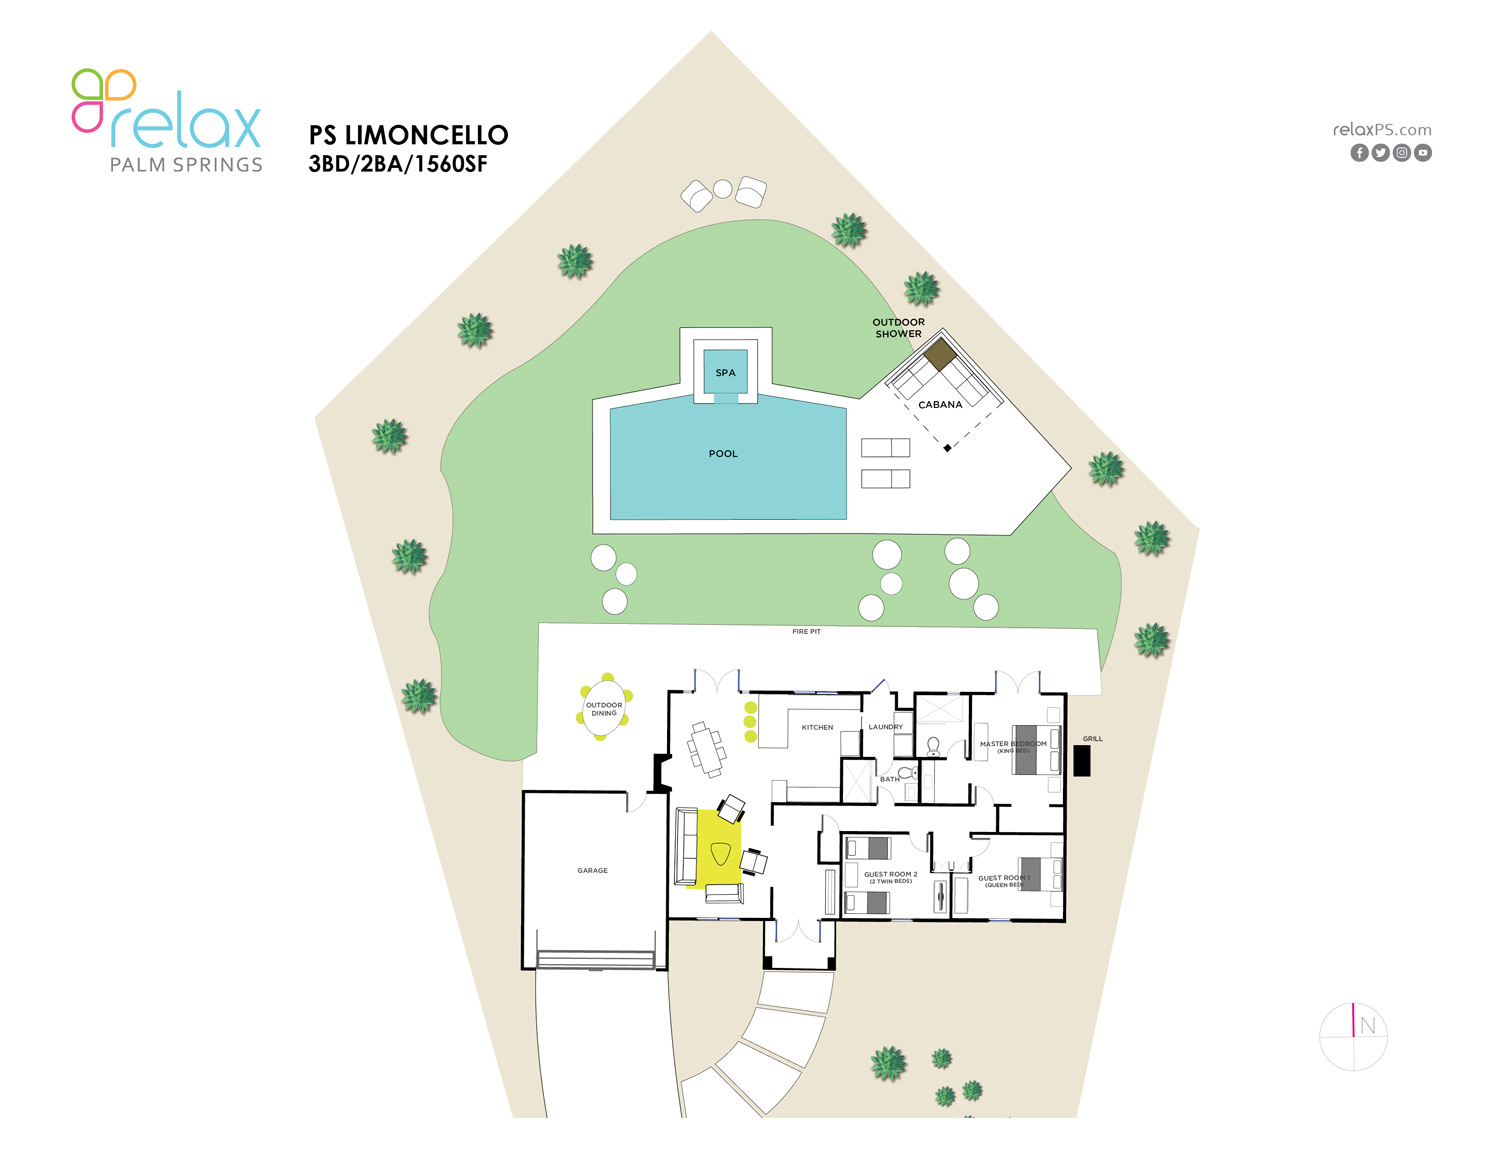 Floor Plan for Sparkling Mini-Resort Offers Lush Gardens and Mid-Century Style